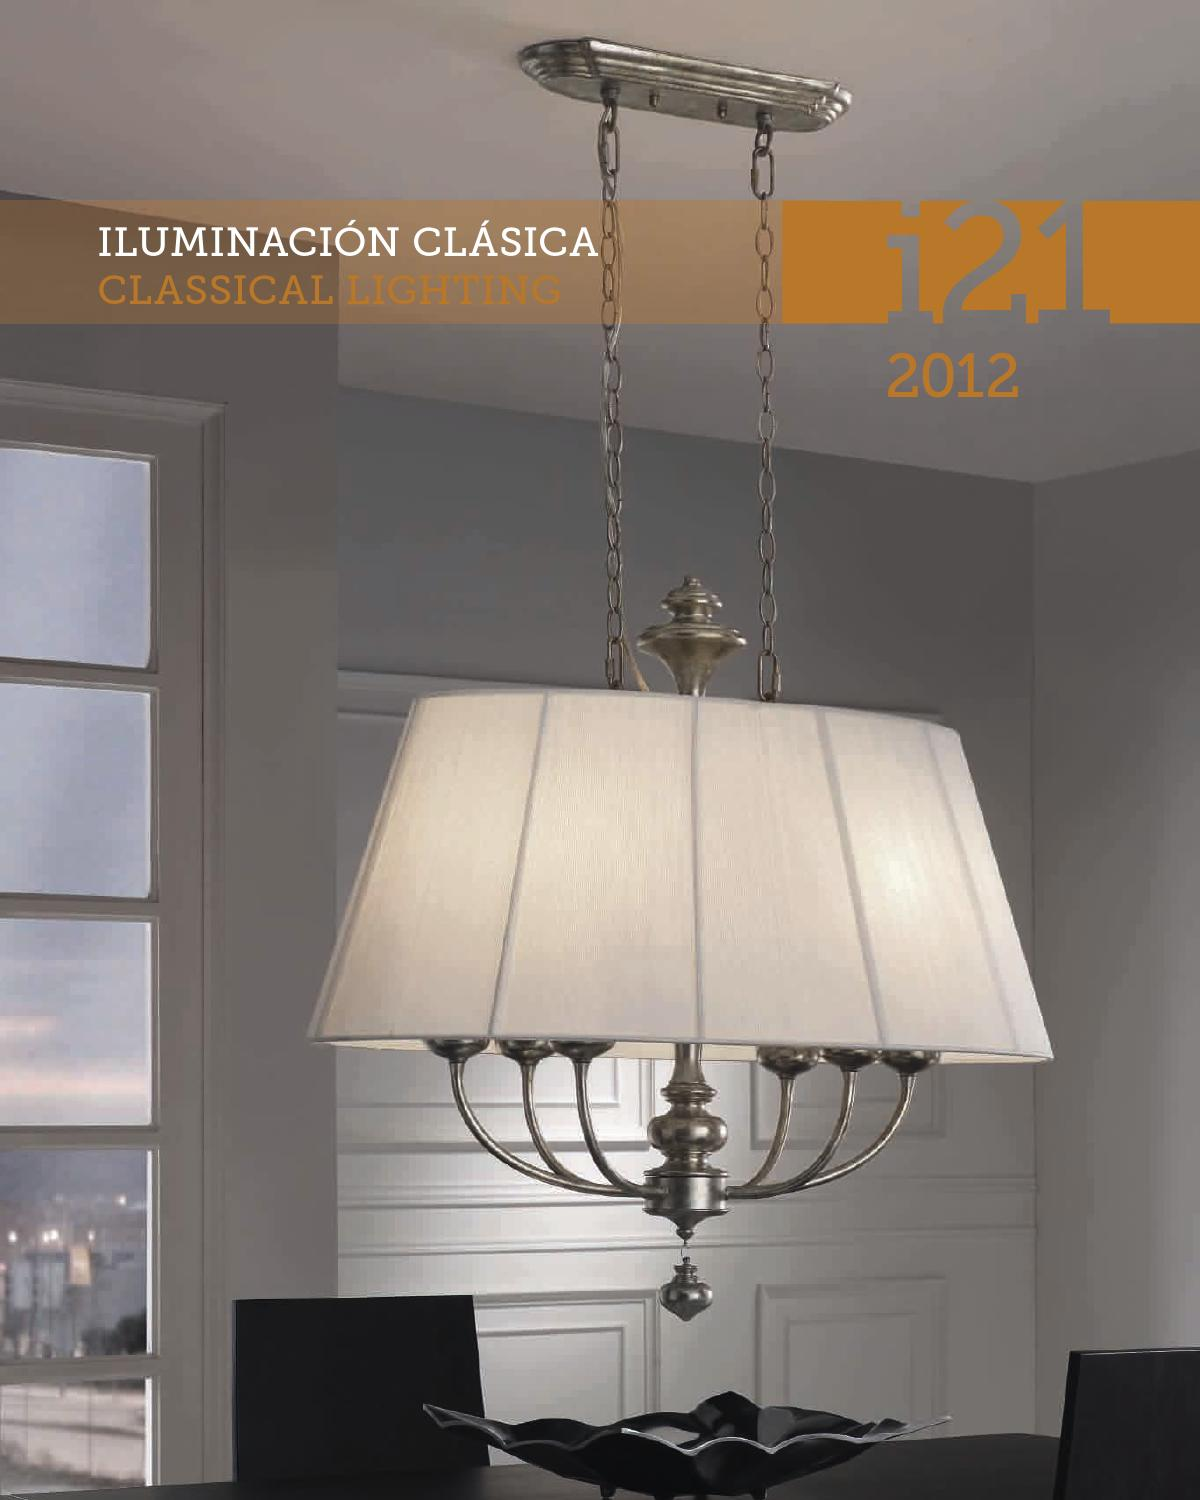 Schuller i21 2012 classical lighting by issuu - Lamparas lucena ...